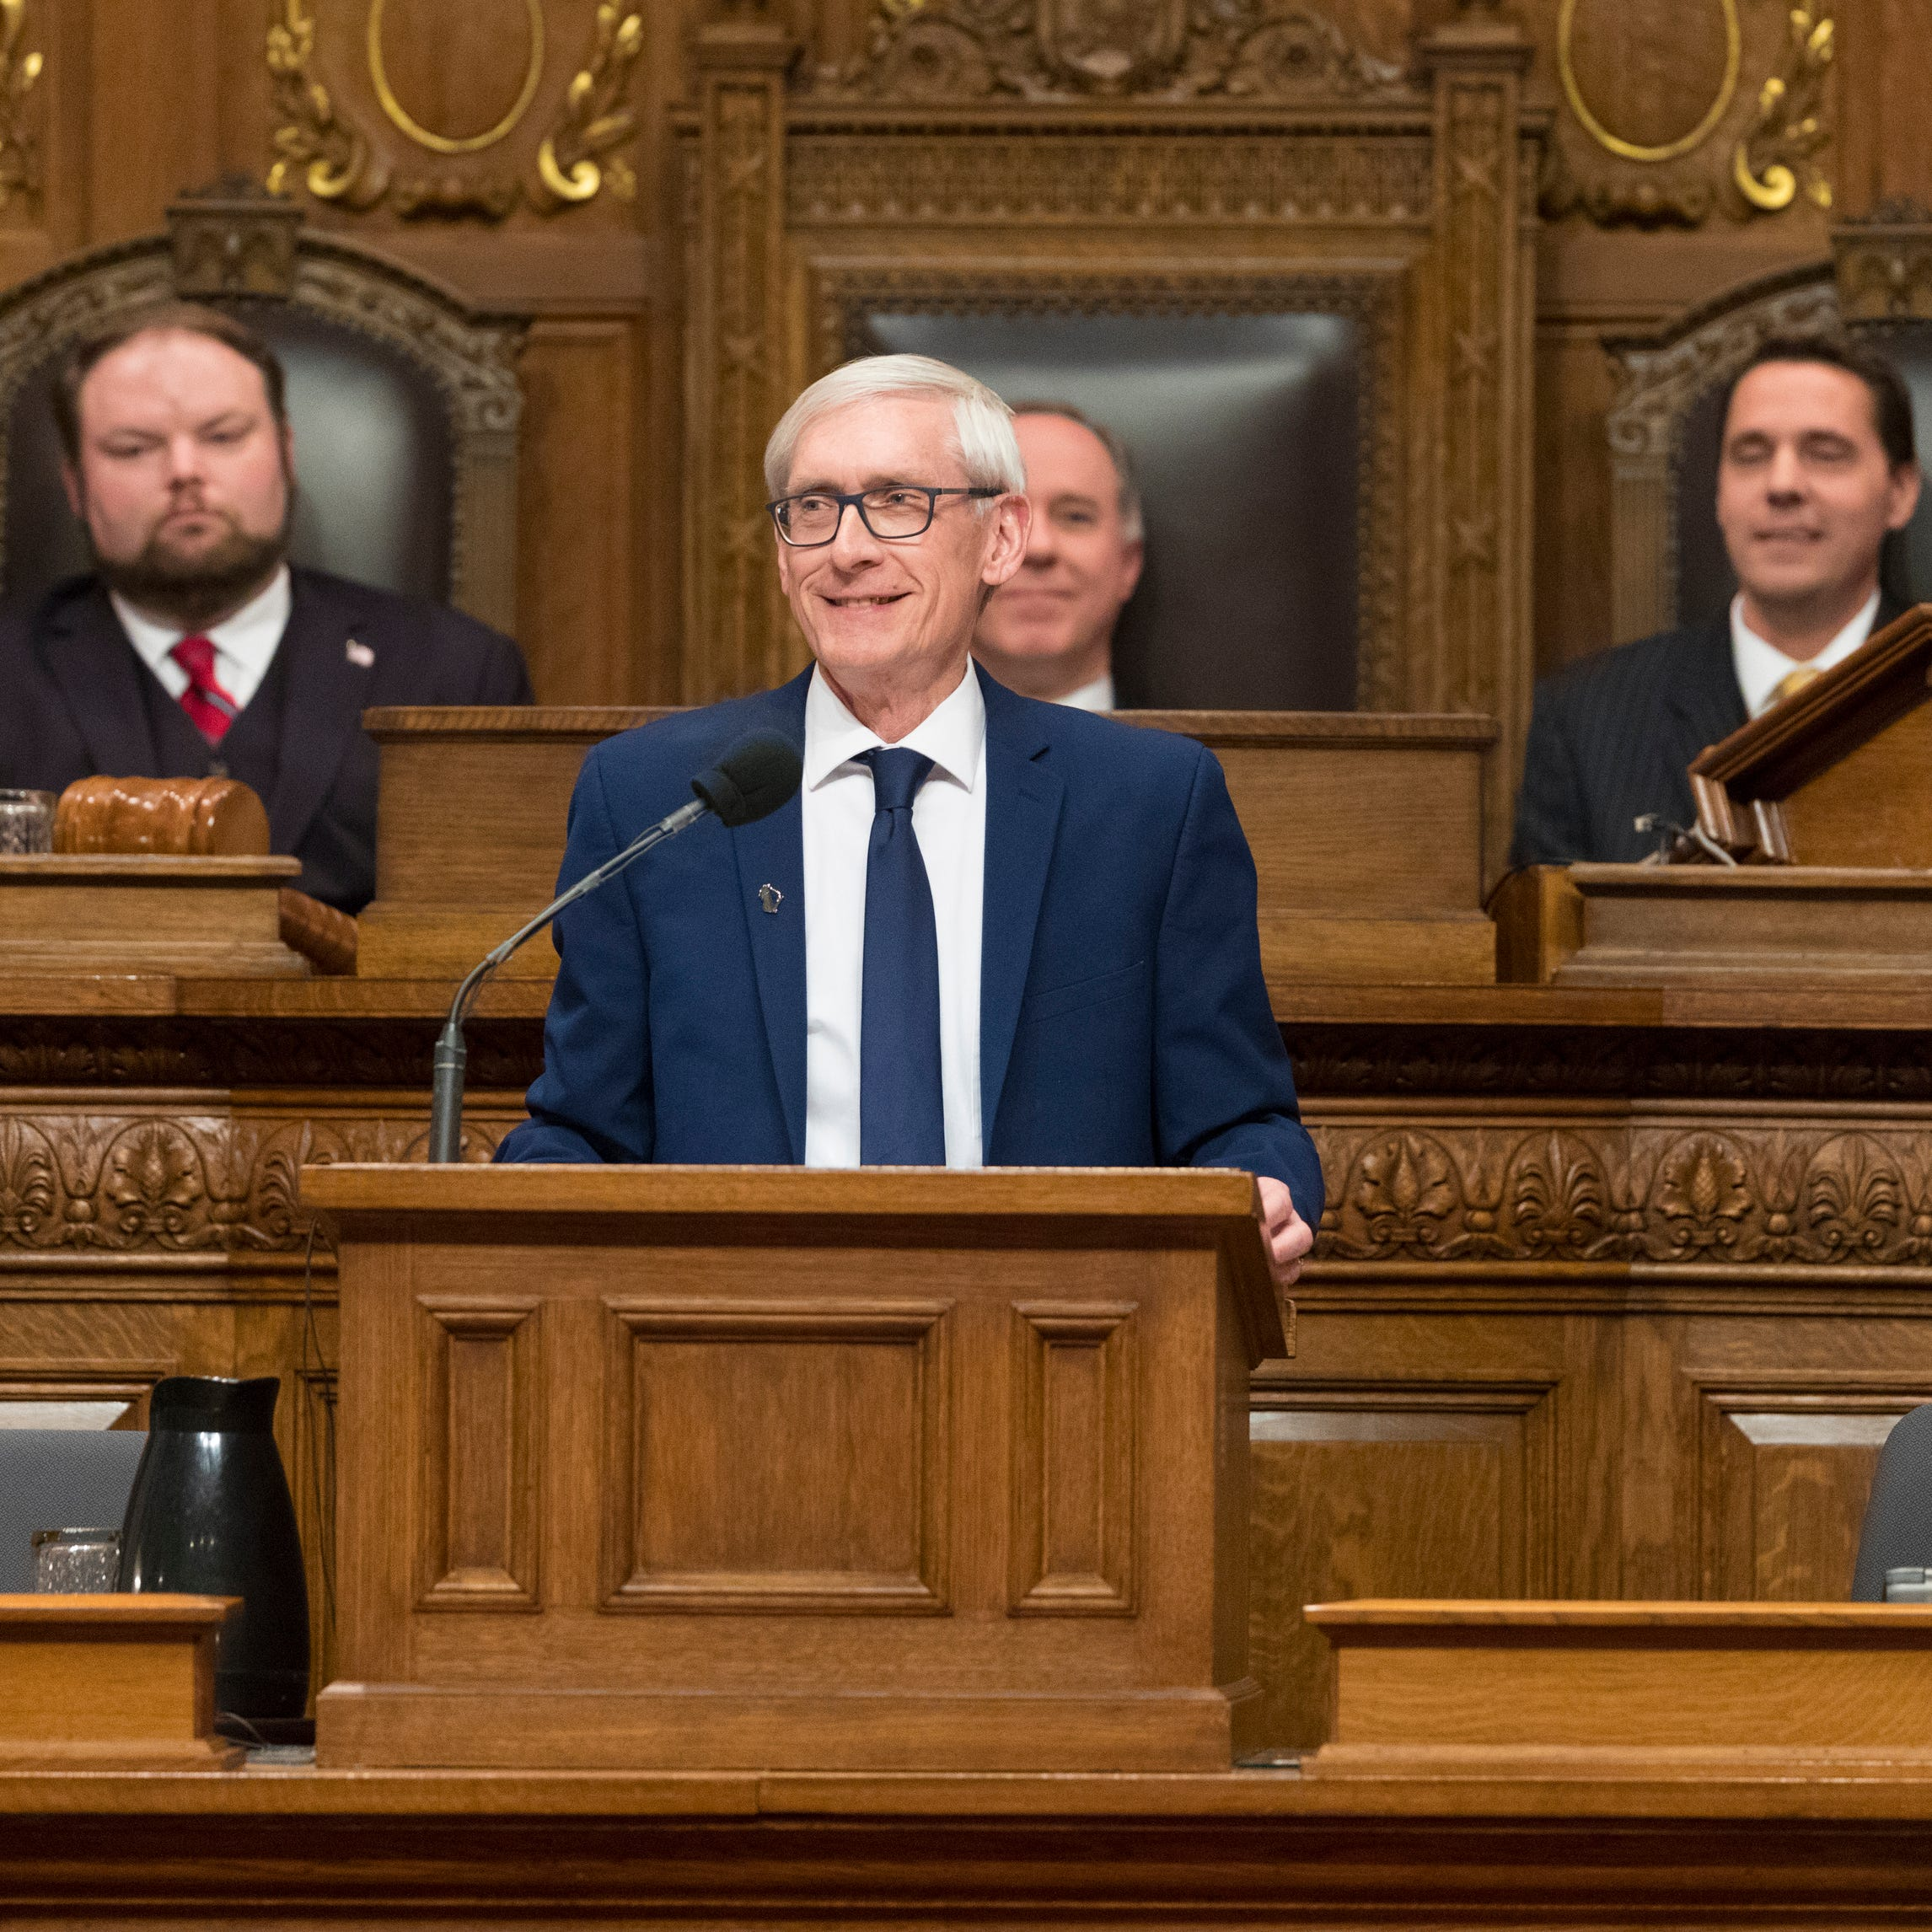 Flanders: Here's another view of what the research says about Tony Evers' proposals